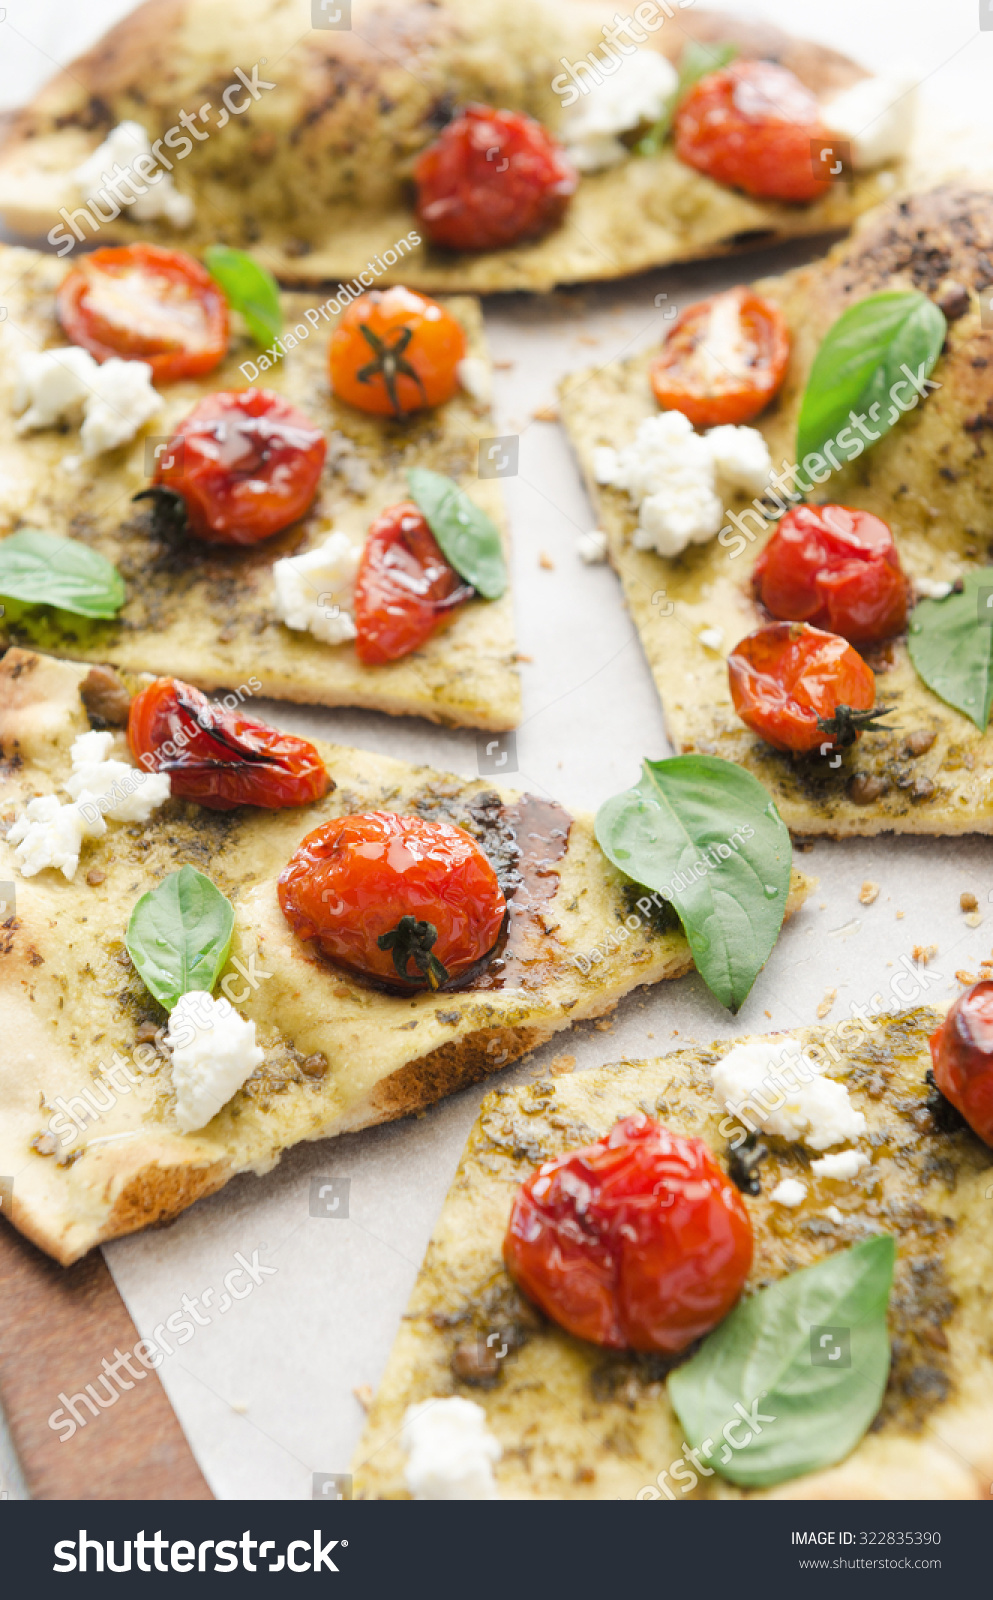 ... thin crust pizza with roasted tomatoes, fresh basil and feta cheese